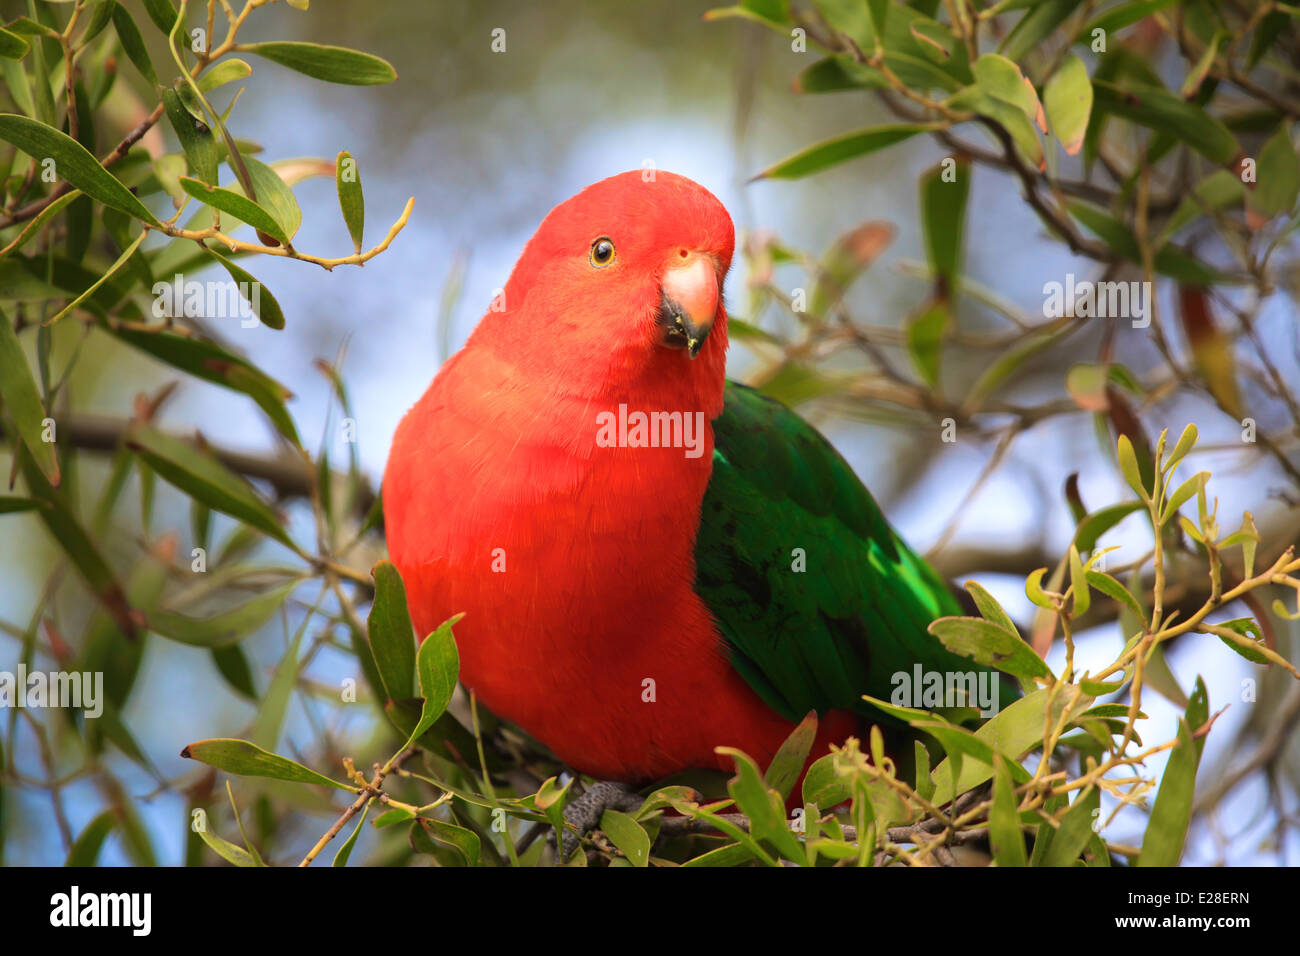 A wild King Australian Parrot sits in a tree. - Stock Image